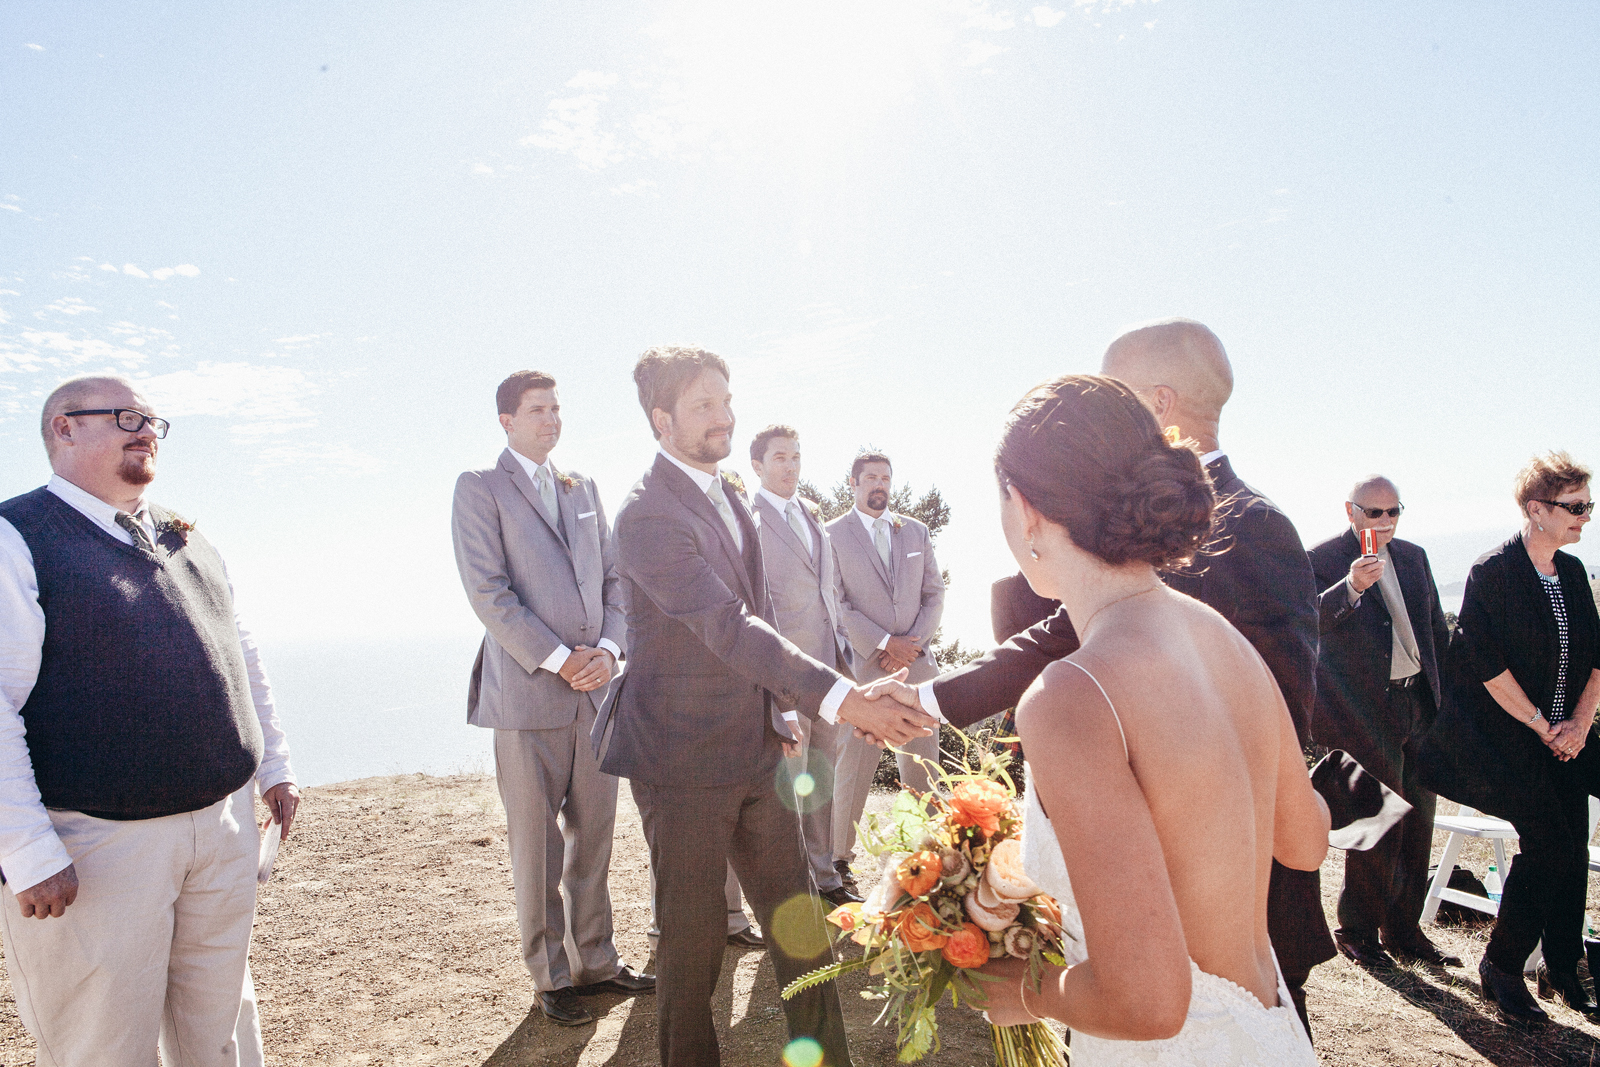 mt_tam_wedding_photography_marin_zac_katie_ebony_siovhan_bokeh_photography_09.jpg